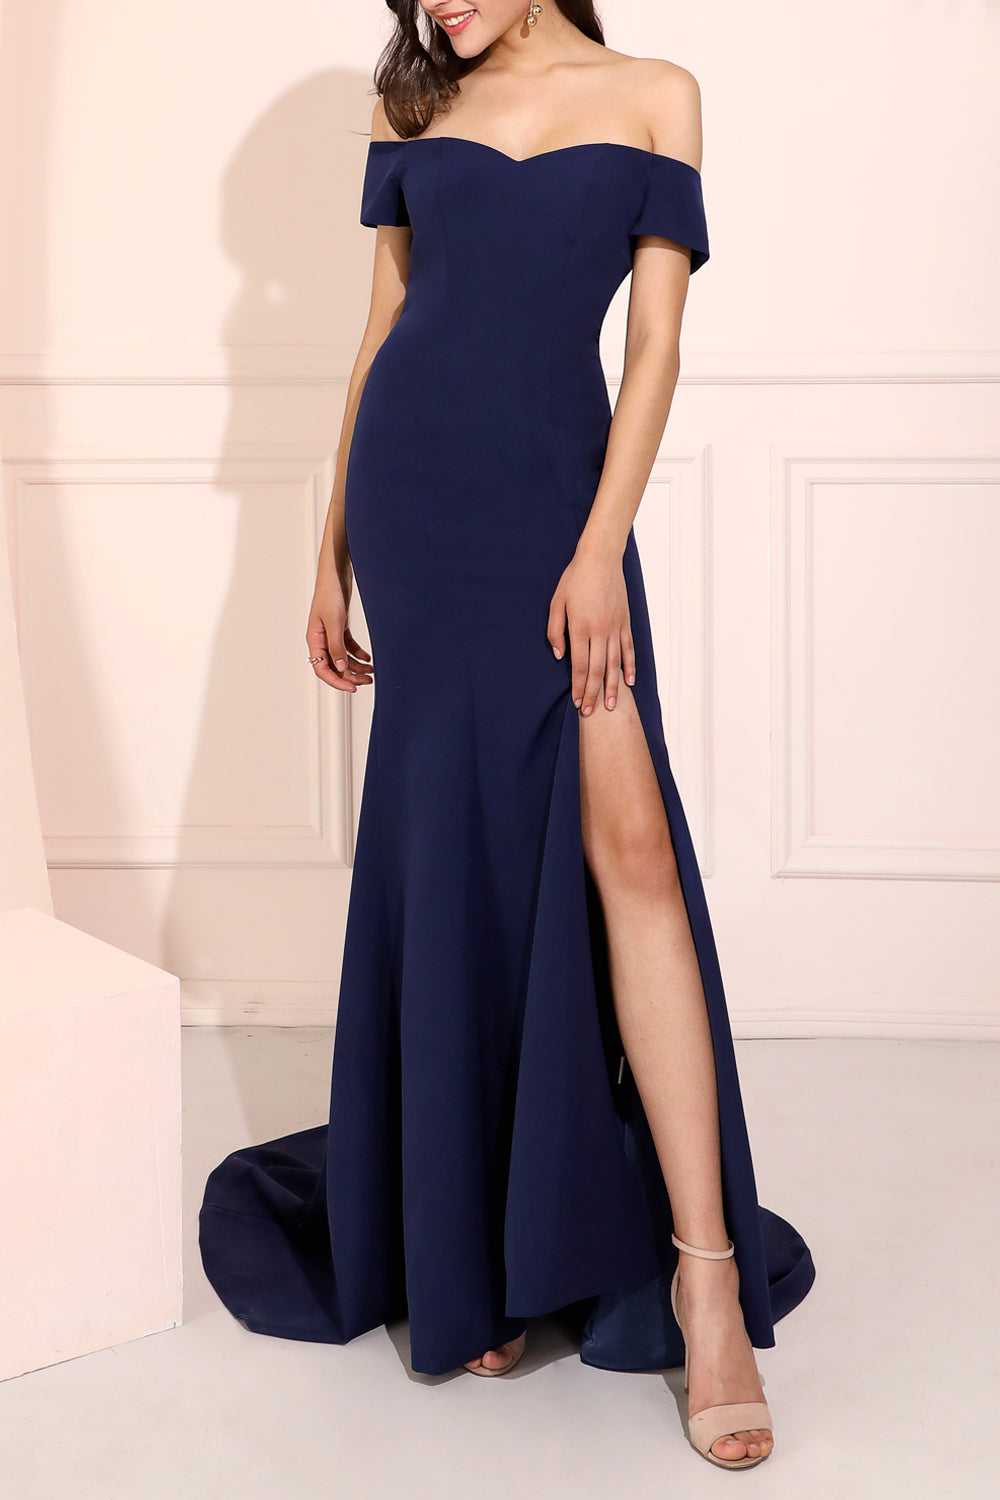 Beauty Mermaid Off the Shoulder Navy Blue Long Prom/Evening Dress Split Front